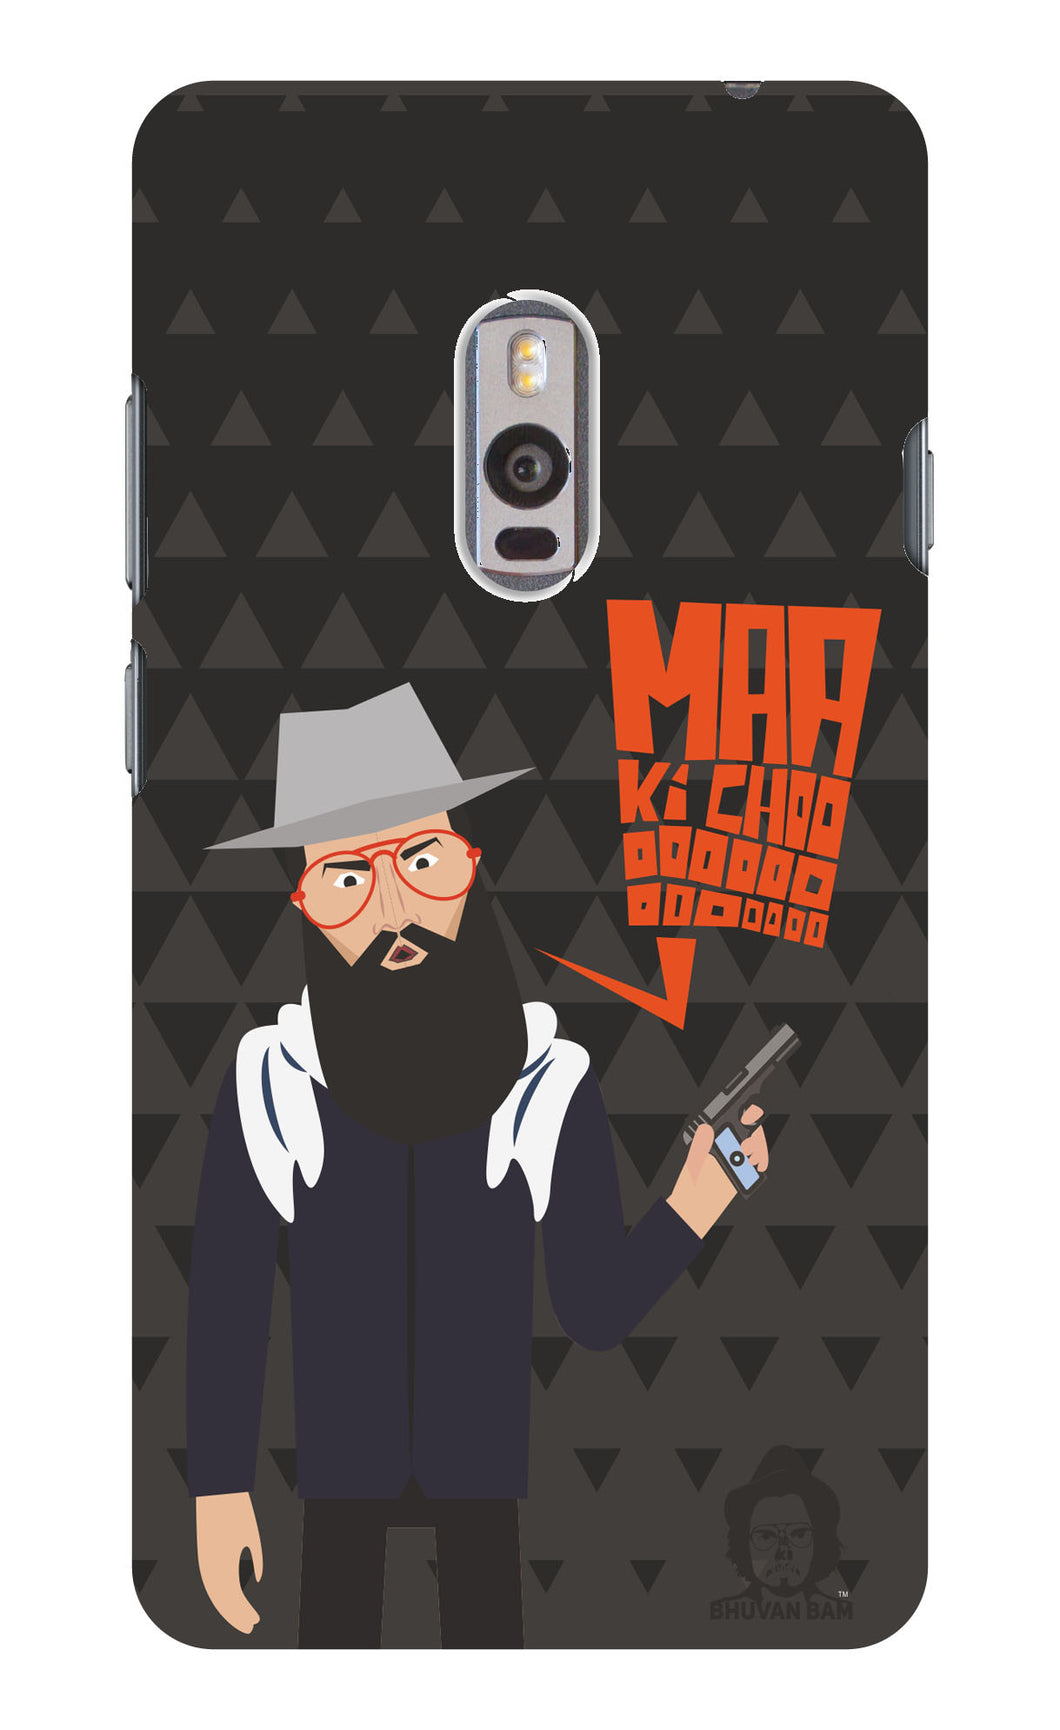 Papa Maaki*** Edition for One Plus 2